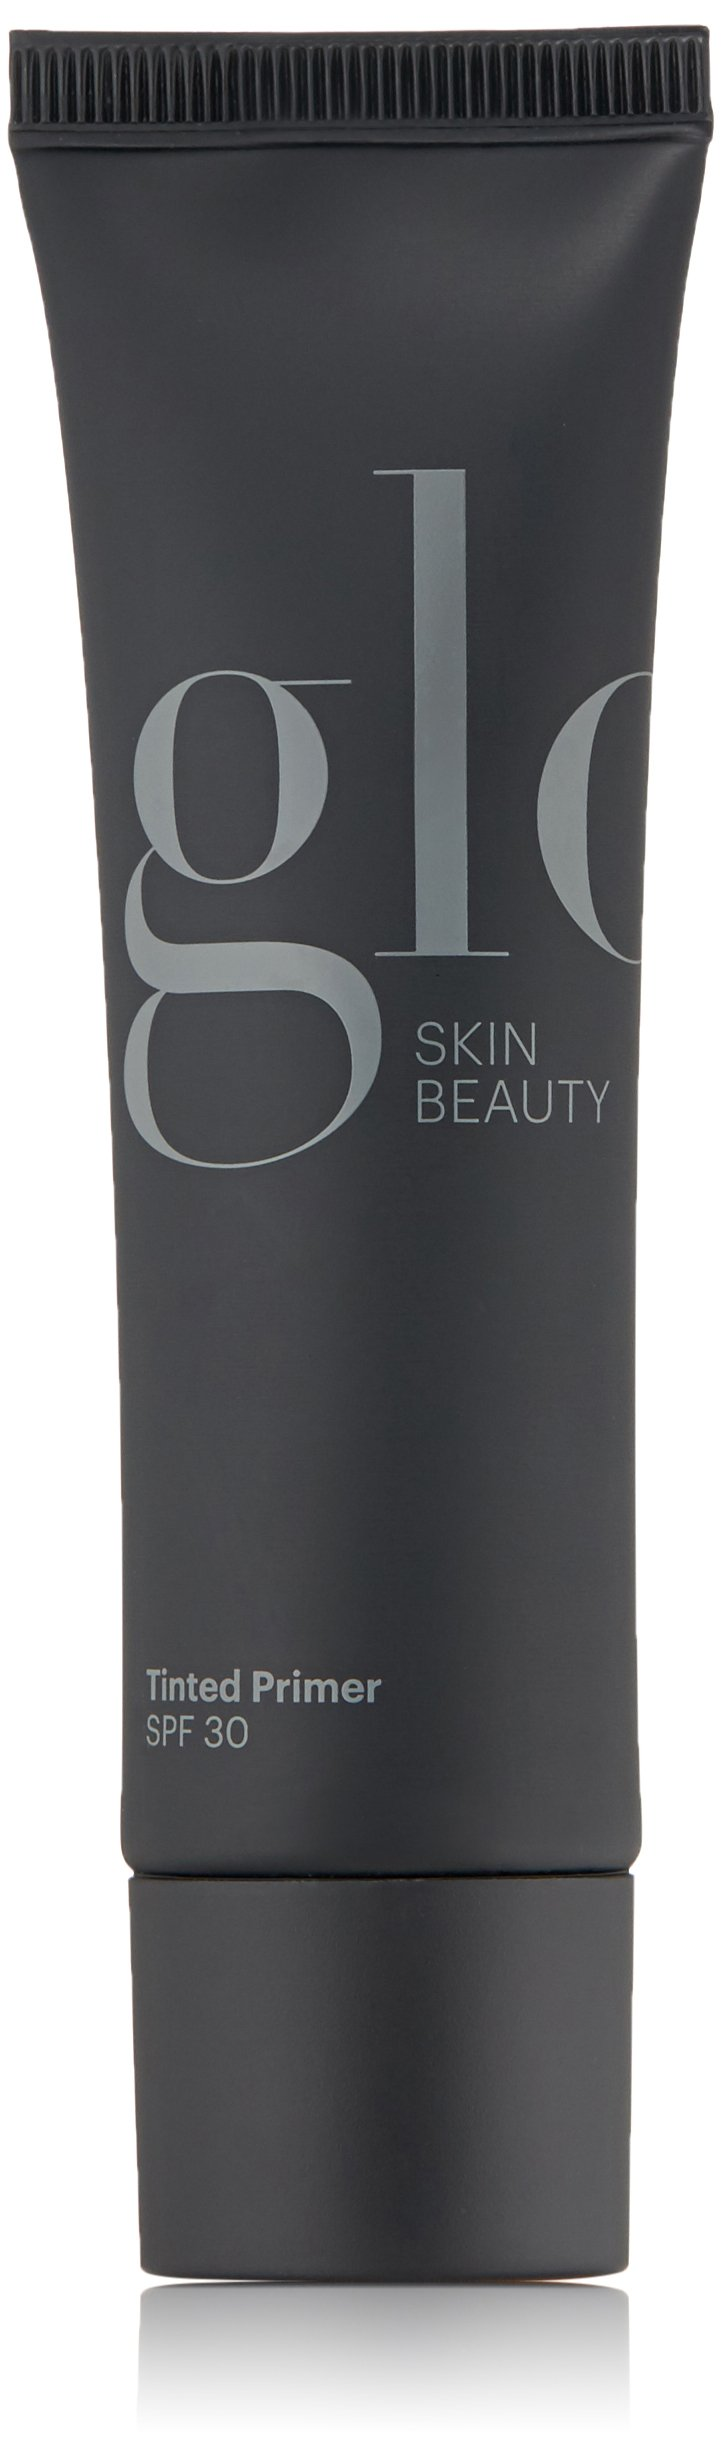 Glo Skin Beauty Tinted Primer SPF 30 in Light | Foundation Face Priming Tint with Sunscreen | 4 Shades, Satin Finish